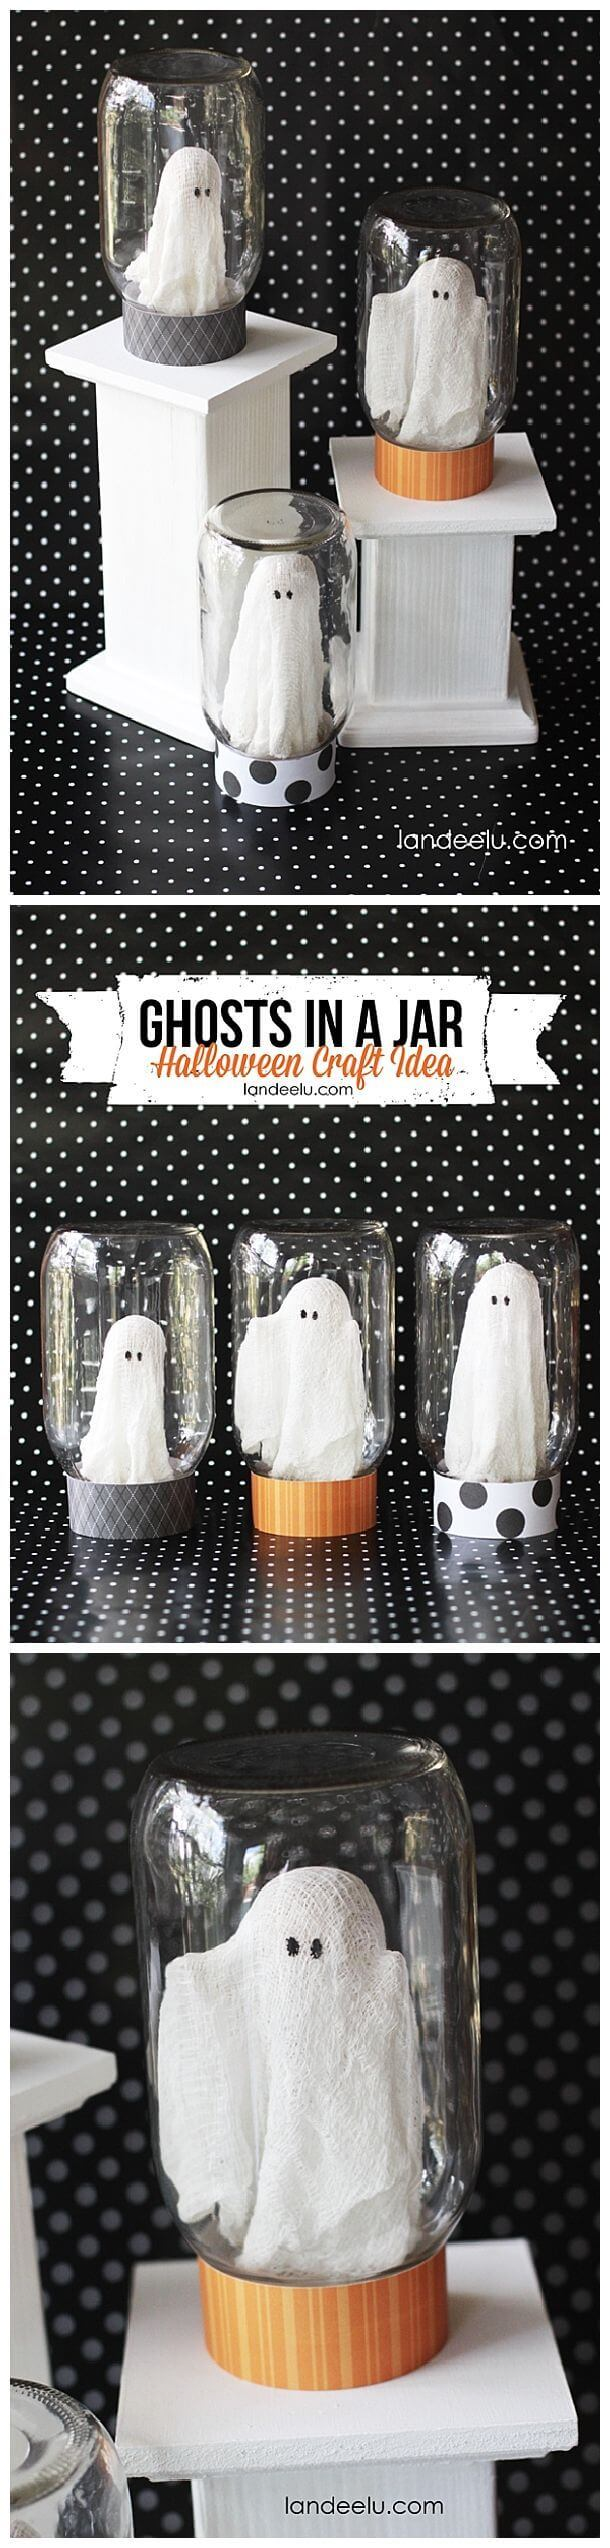 Catch-A-Ghost Halloween Craft Idea